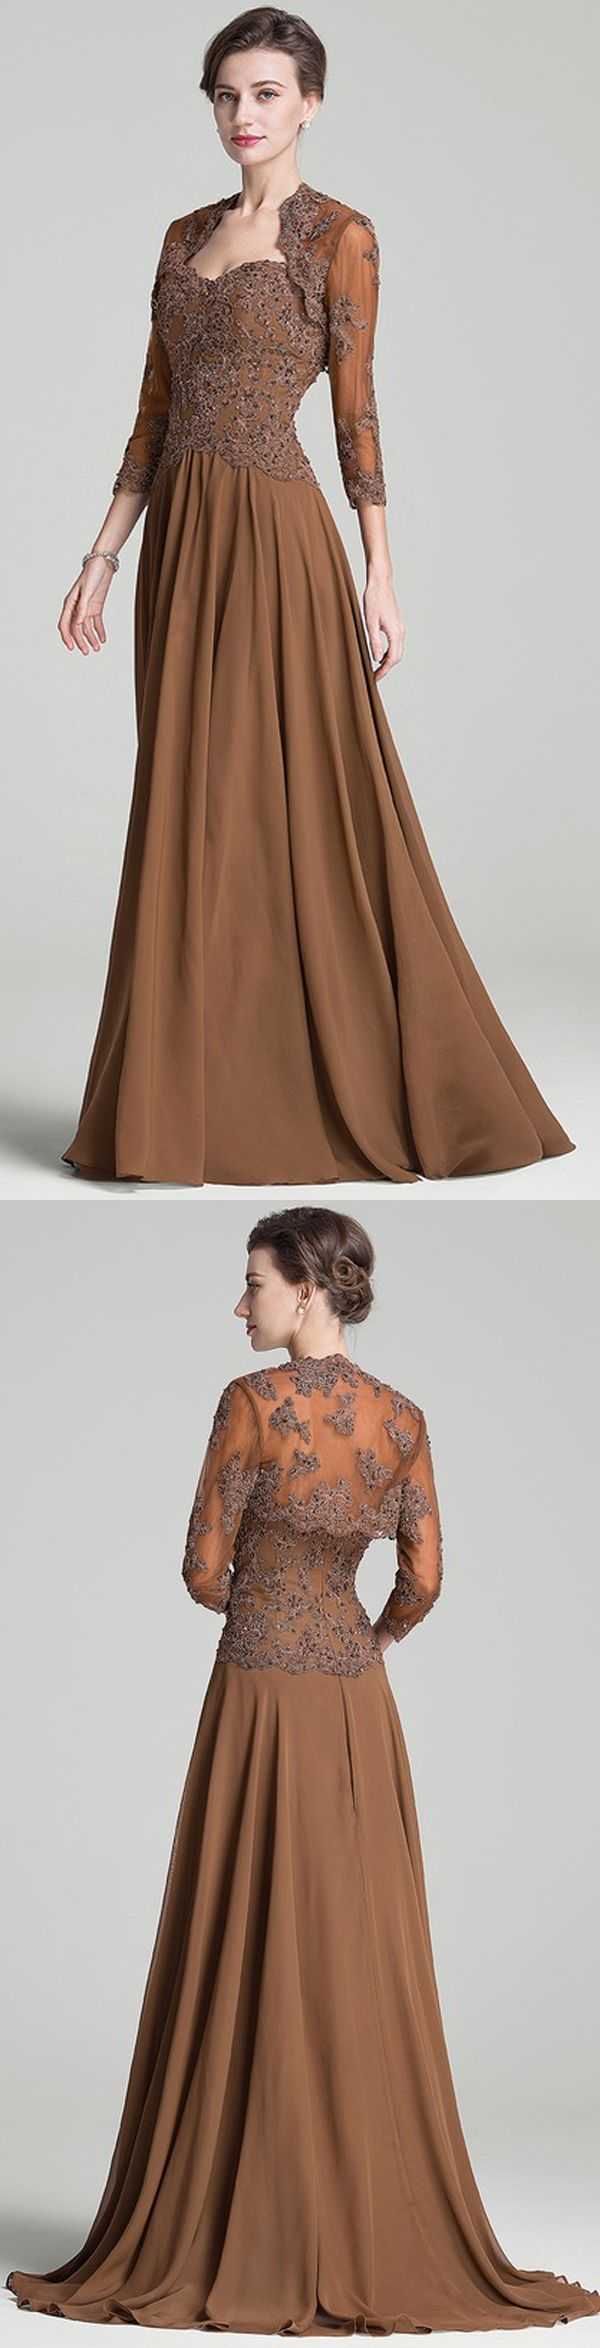 Brown Chiffon Sweetheart Mother Of The Bride Dress 167 99 Mother Of The Bride Dresses Pretty Dresses Dresses